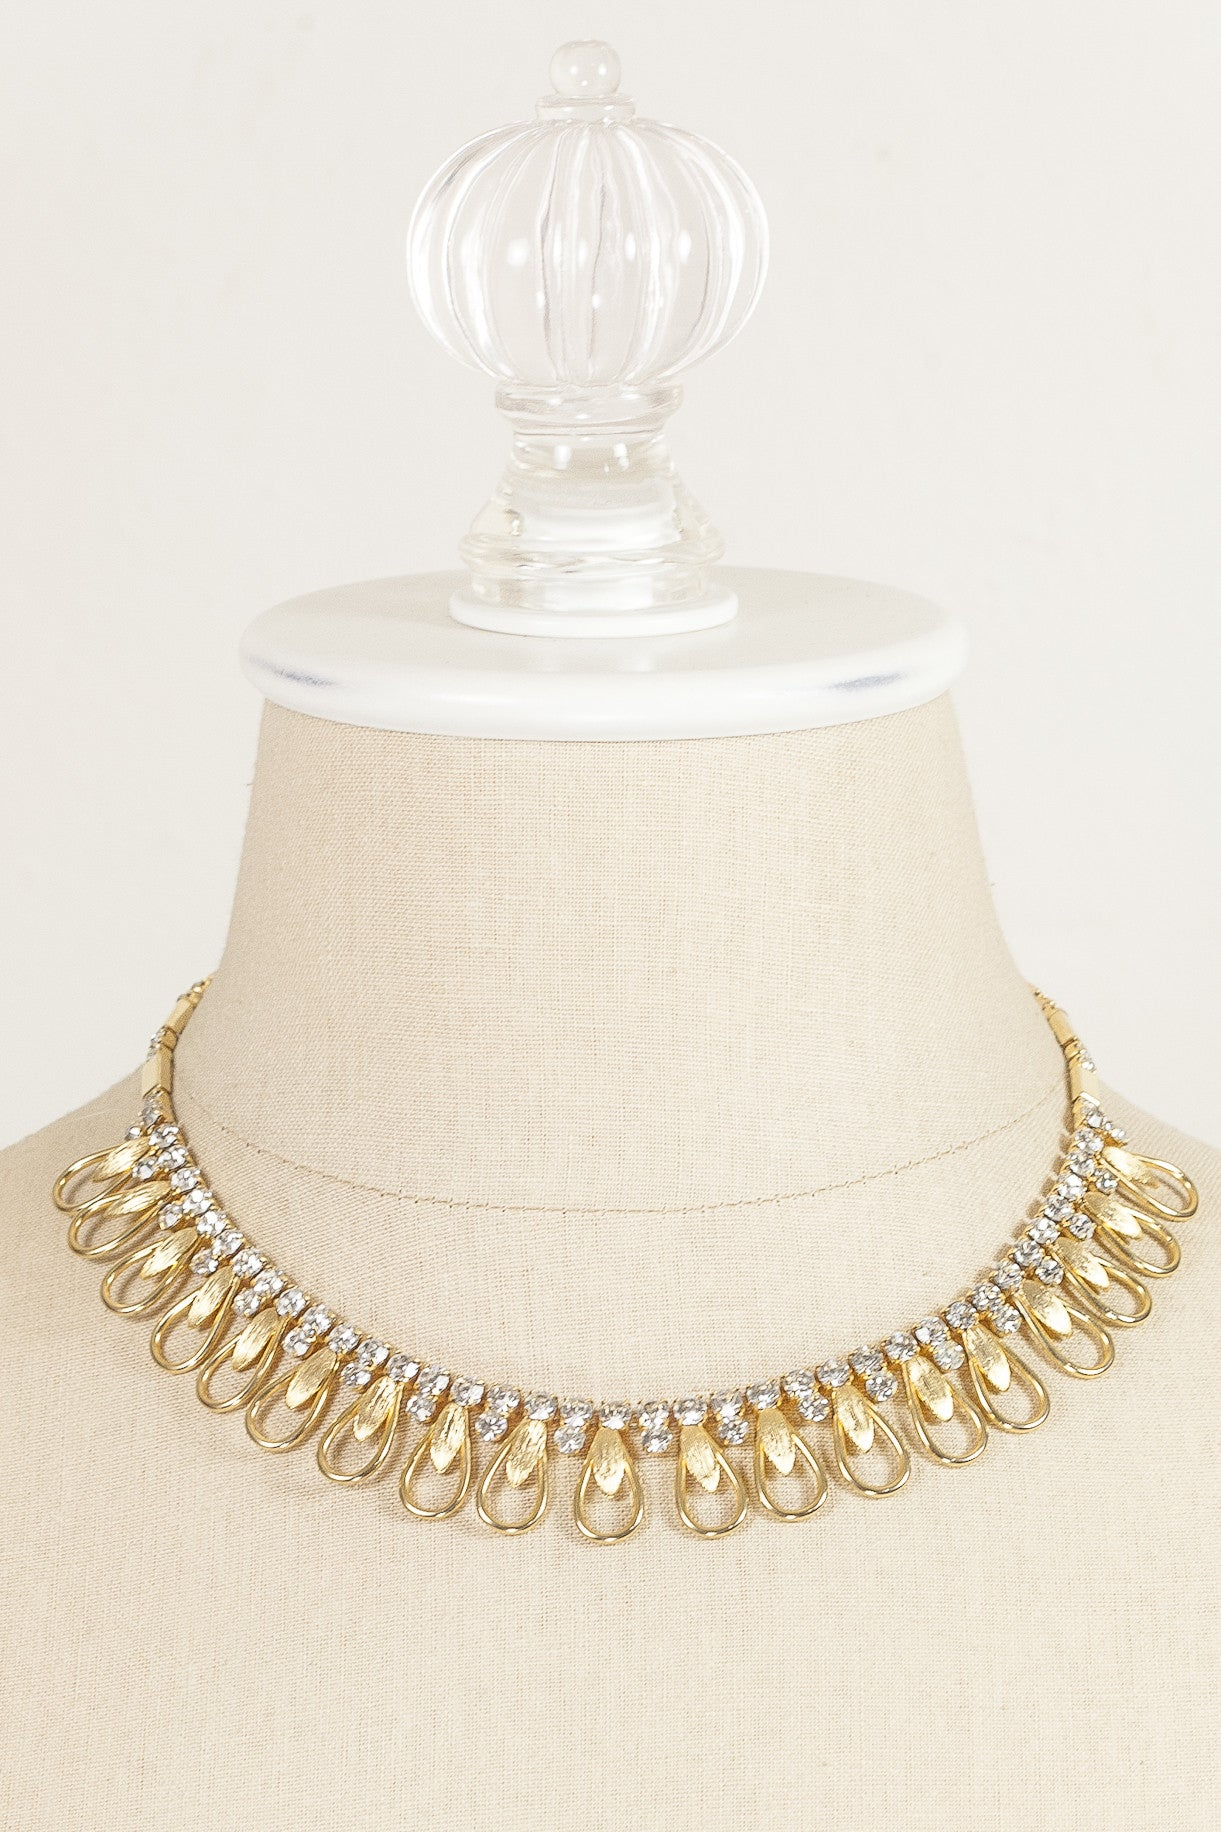 60's__Sarah Coventry__Scallop Bib Necklace